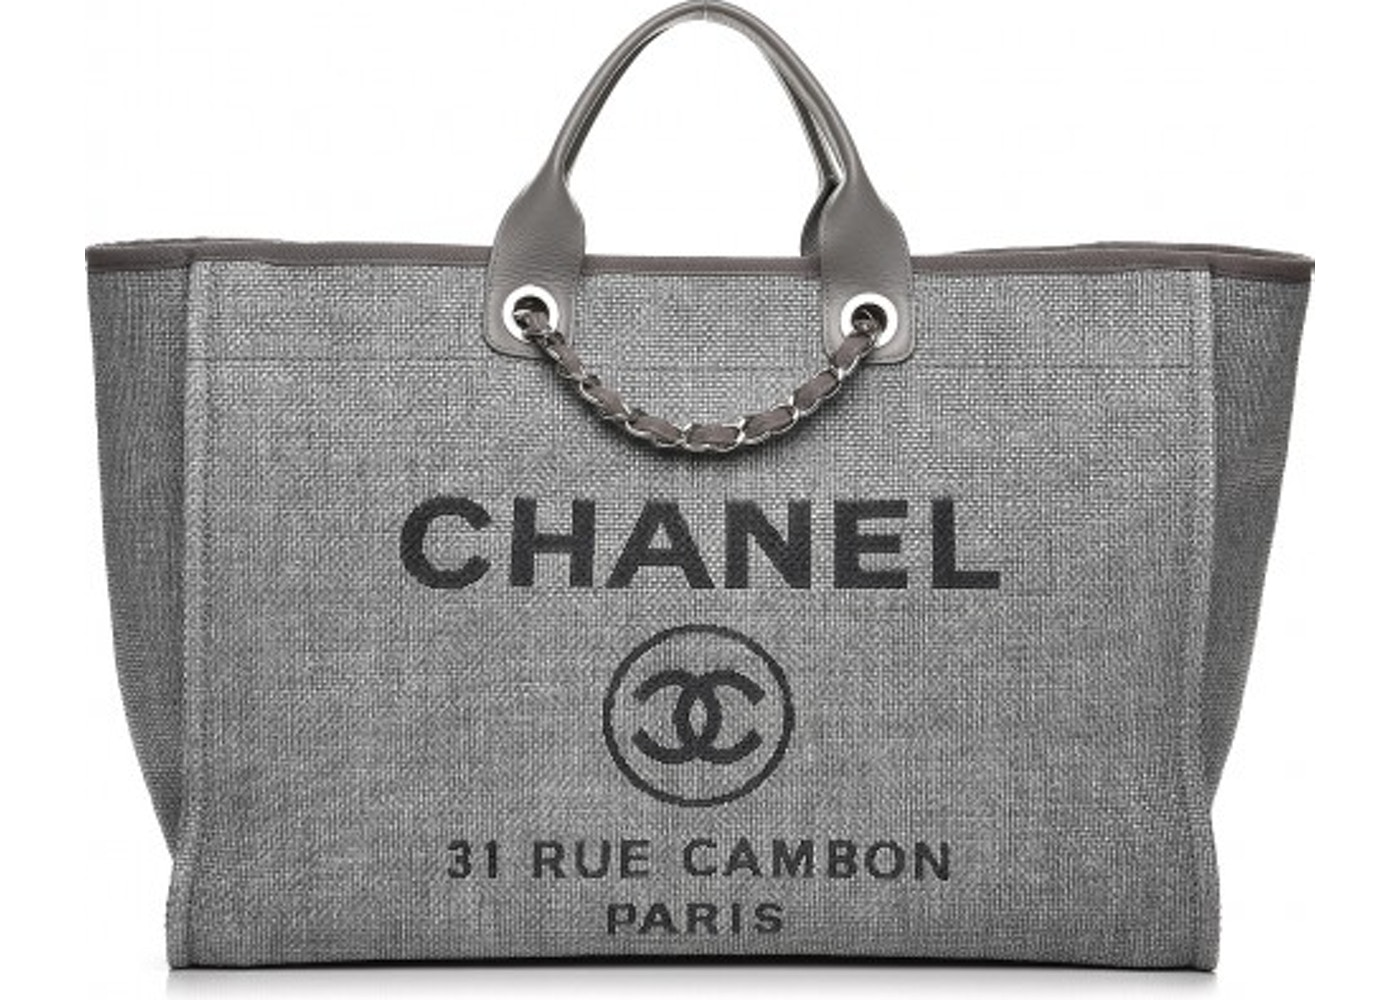 7daf407c32ad Chanel Deauville Tote Woven Large Grey. Woven Large Grey